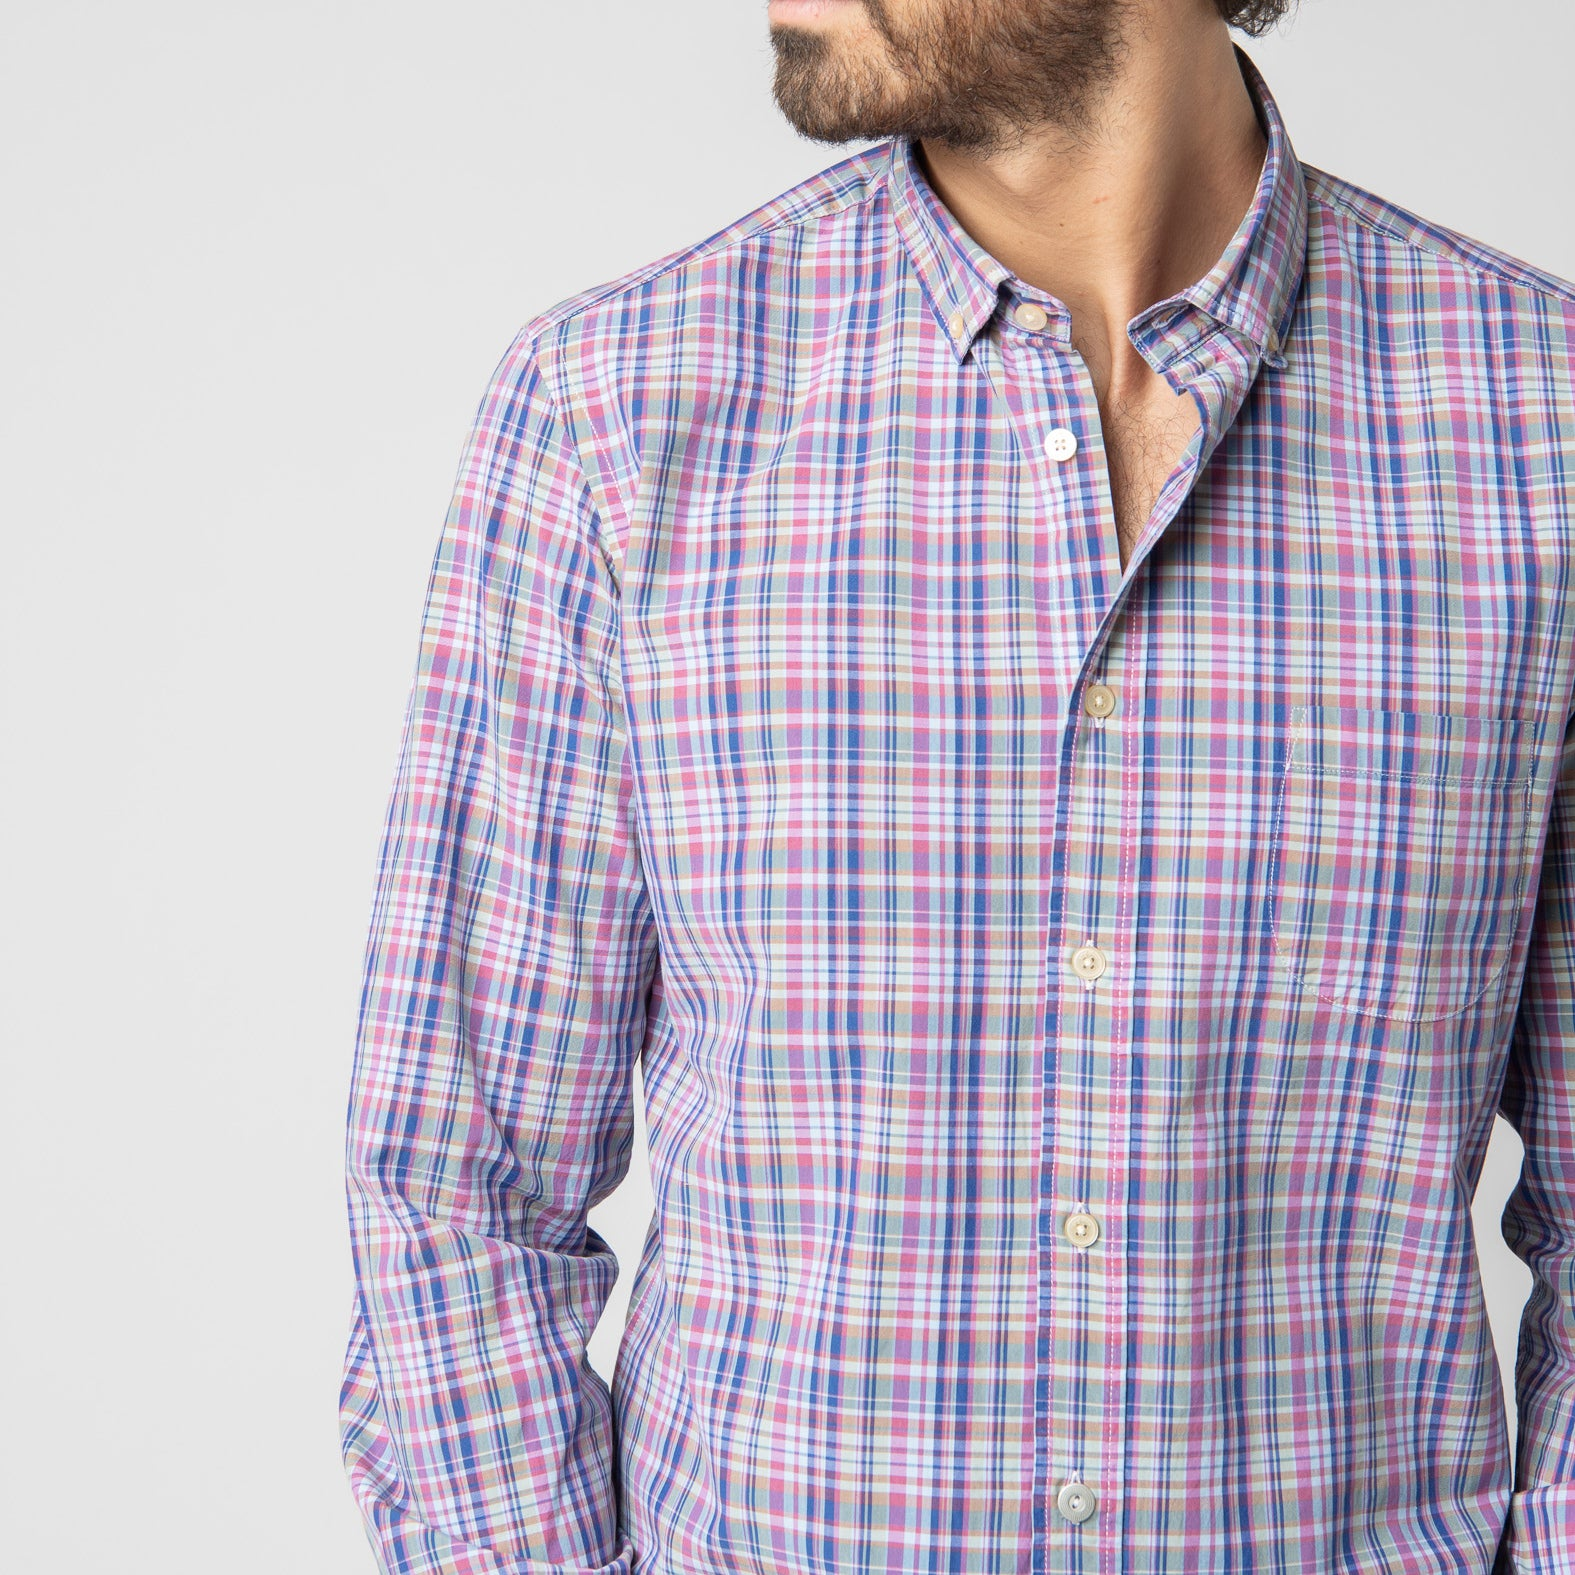 Blue Violet Plaid Shirt